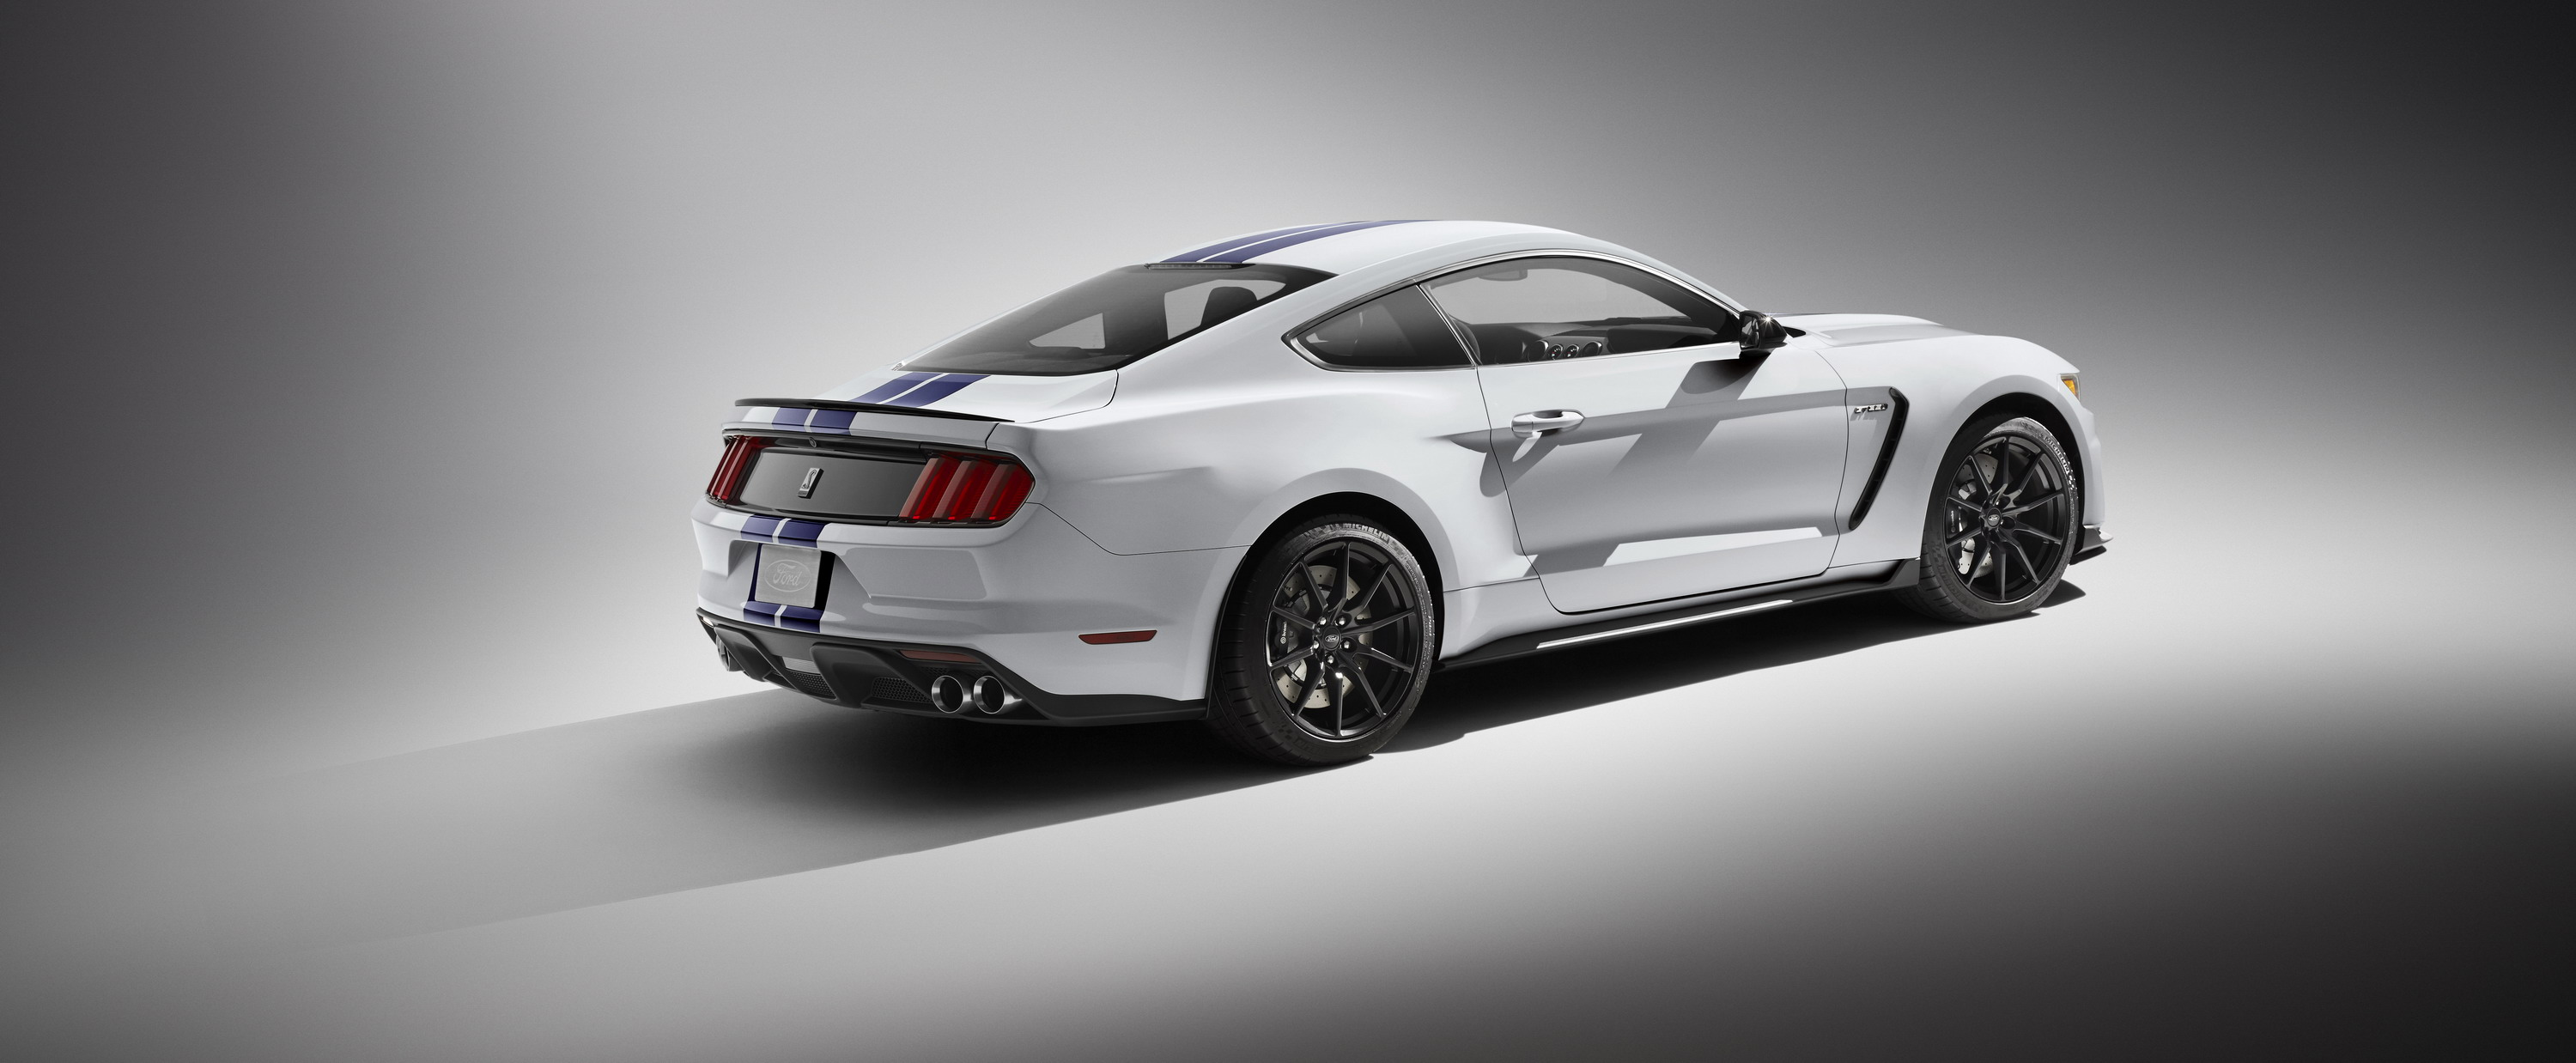 2016 2017 ford shelby gt350 mustang gallery 578015 top speed. Black Bedroom Furniture Sets. Home Design Ideas